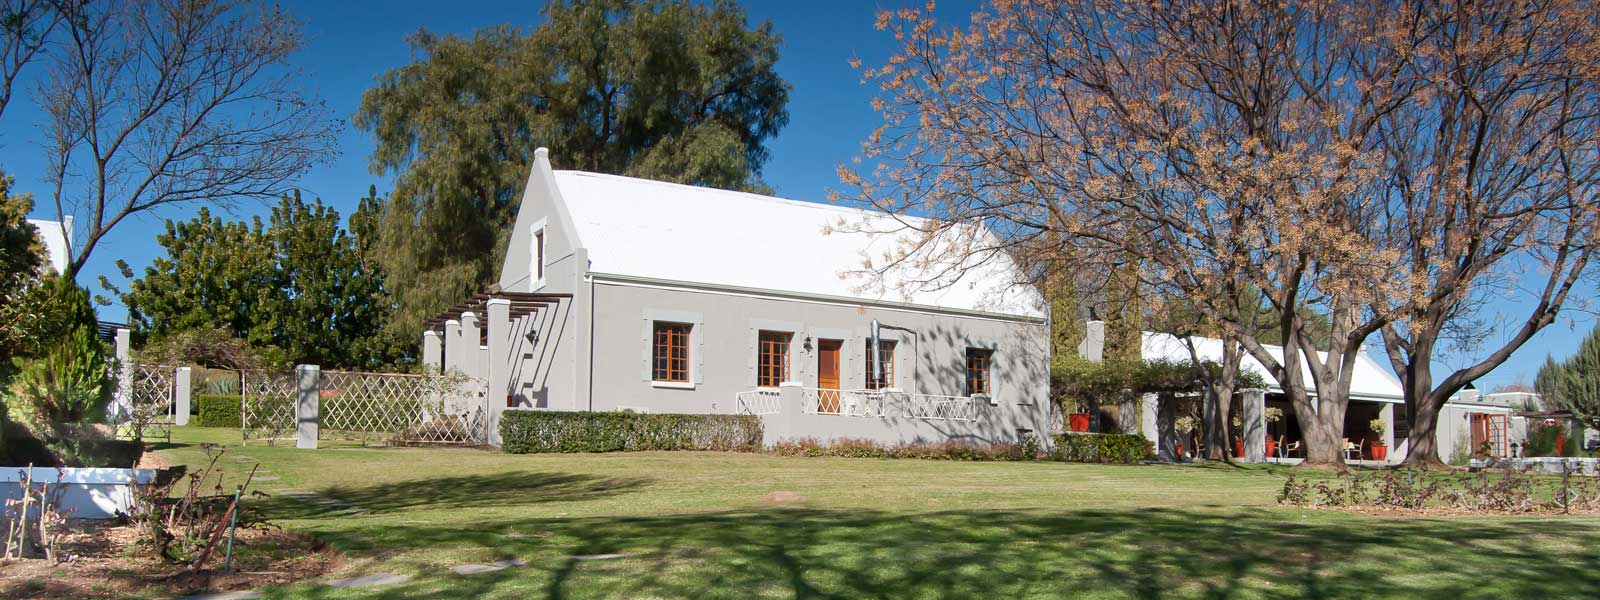 throntree country lodge in oudtshoorn garden